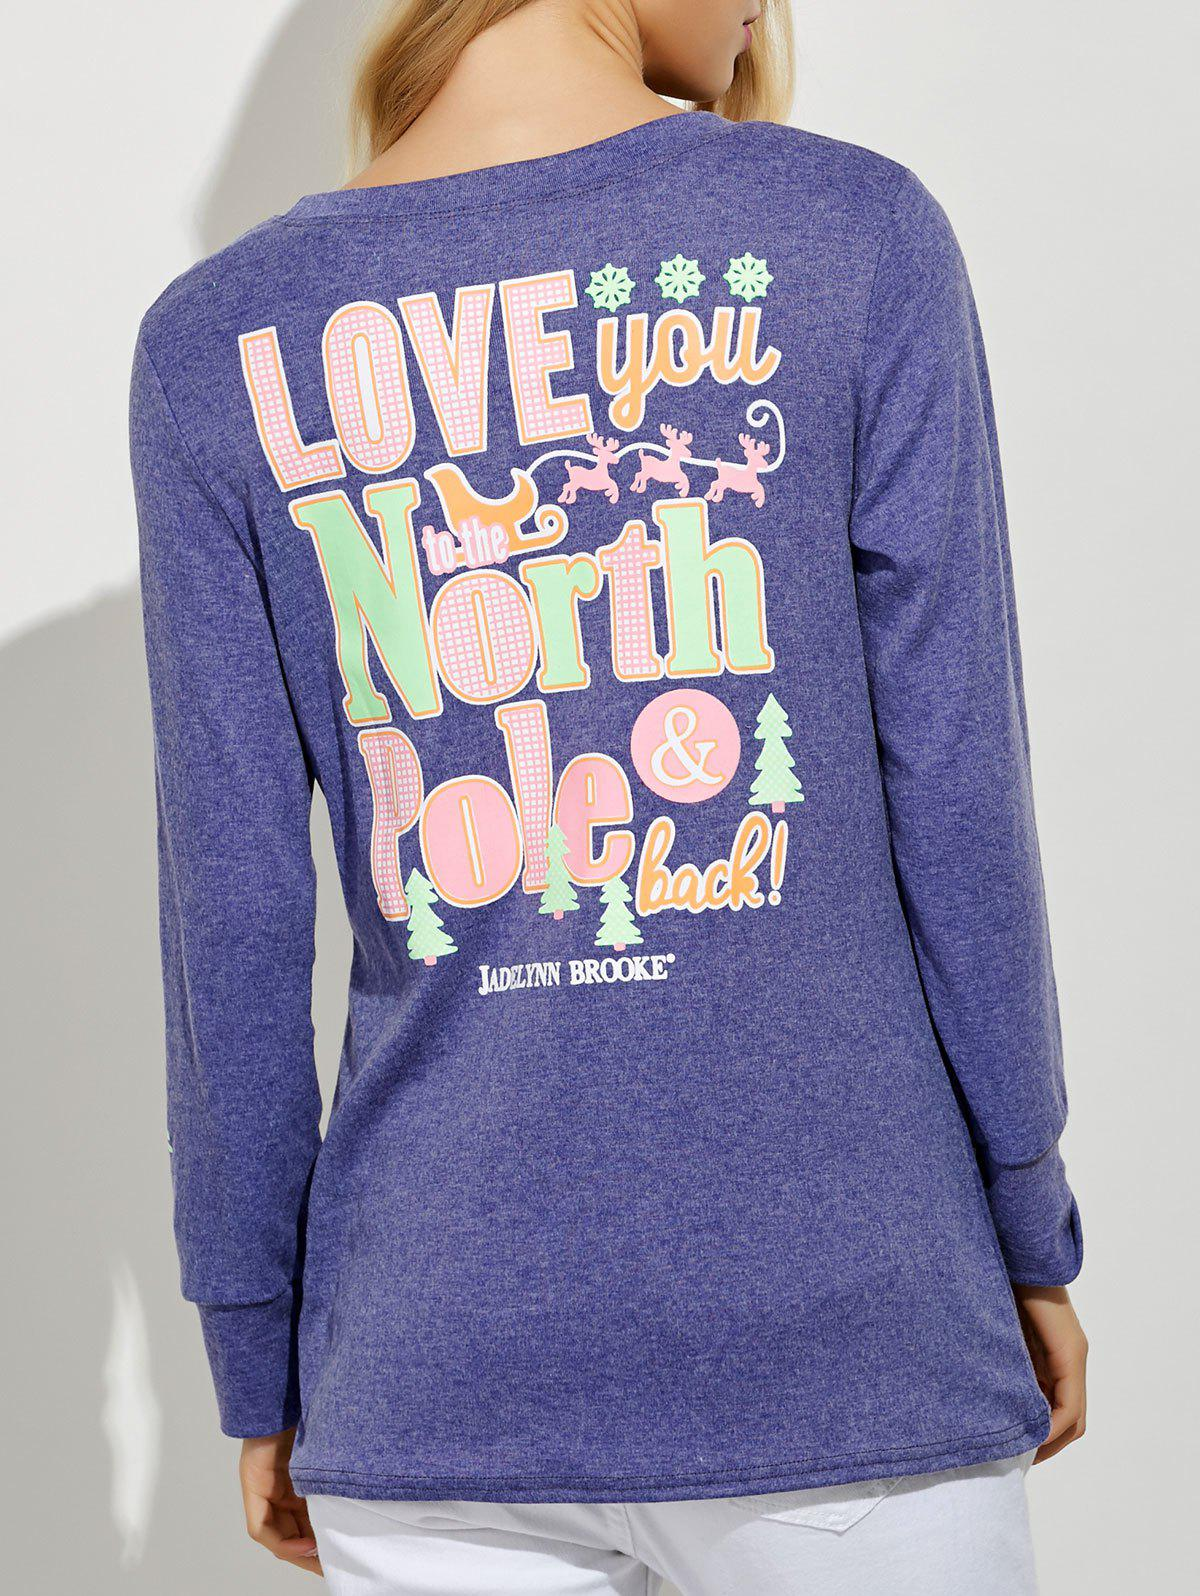 Hot Funny Print Long Sleeves Tunic T-Shirt